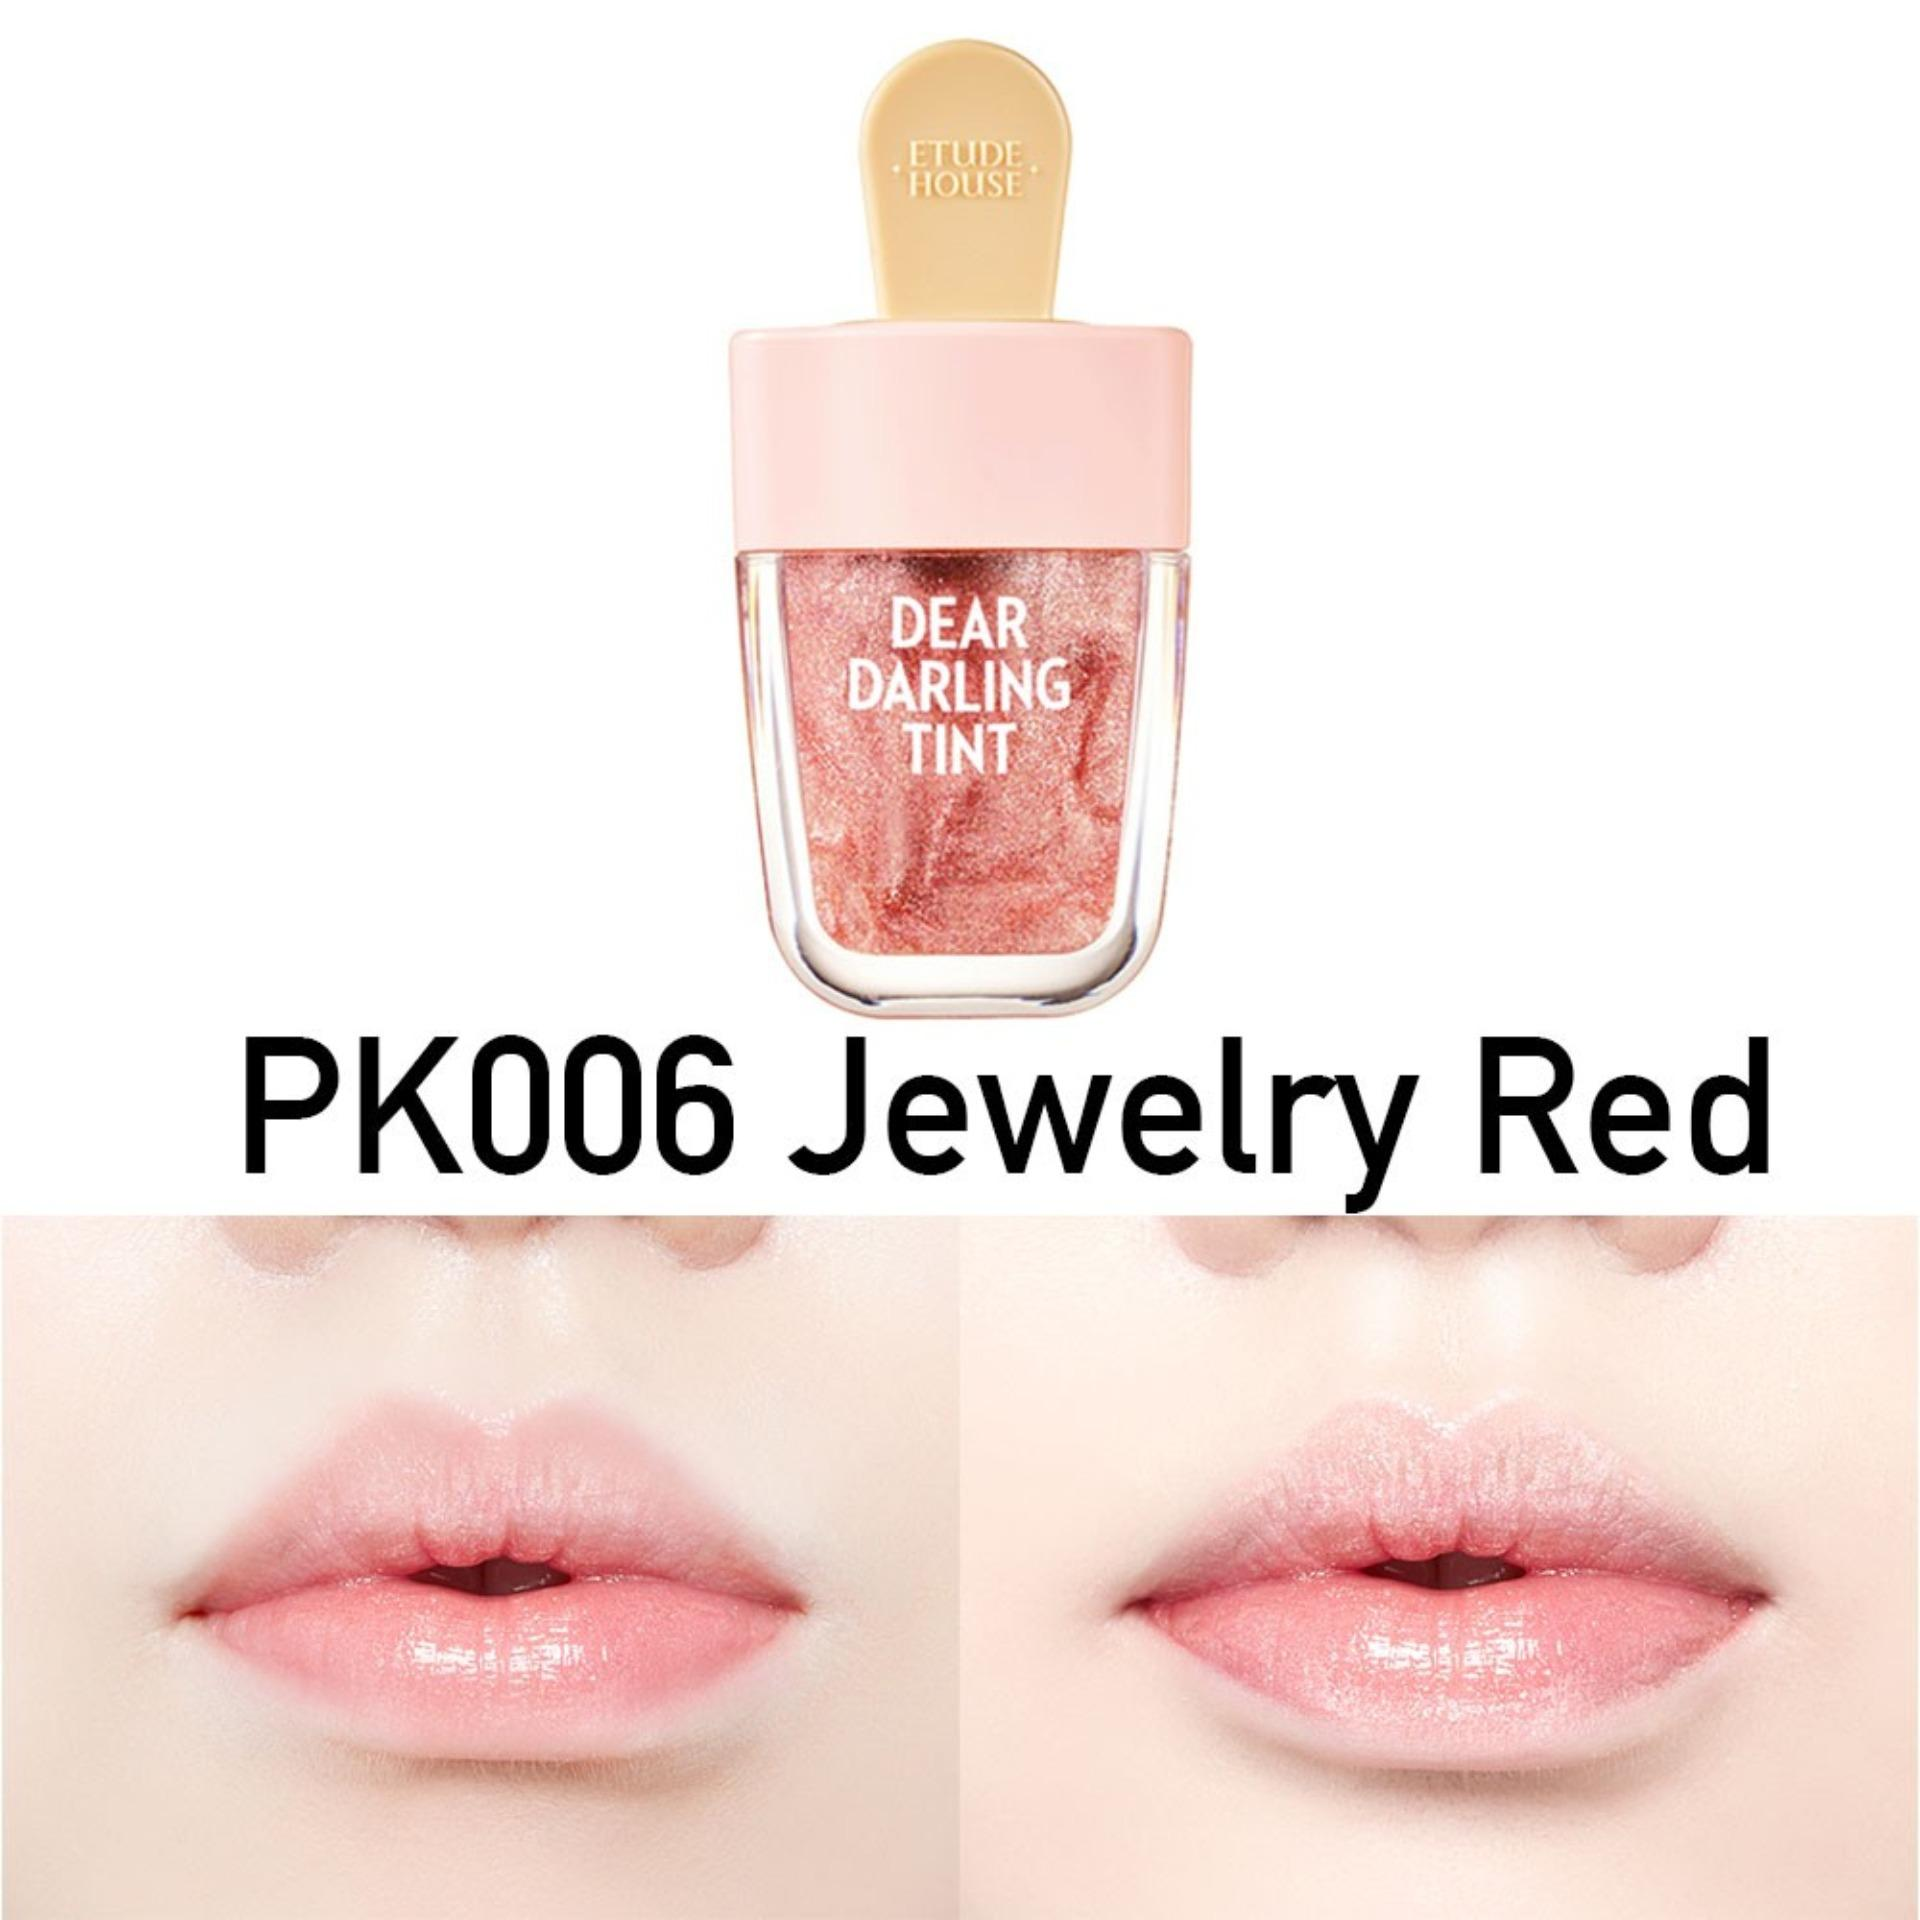 Etude House Dear Darling Water Gel Tint Ice Cream - Jewelry Red (PK006)